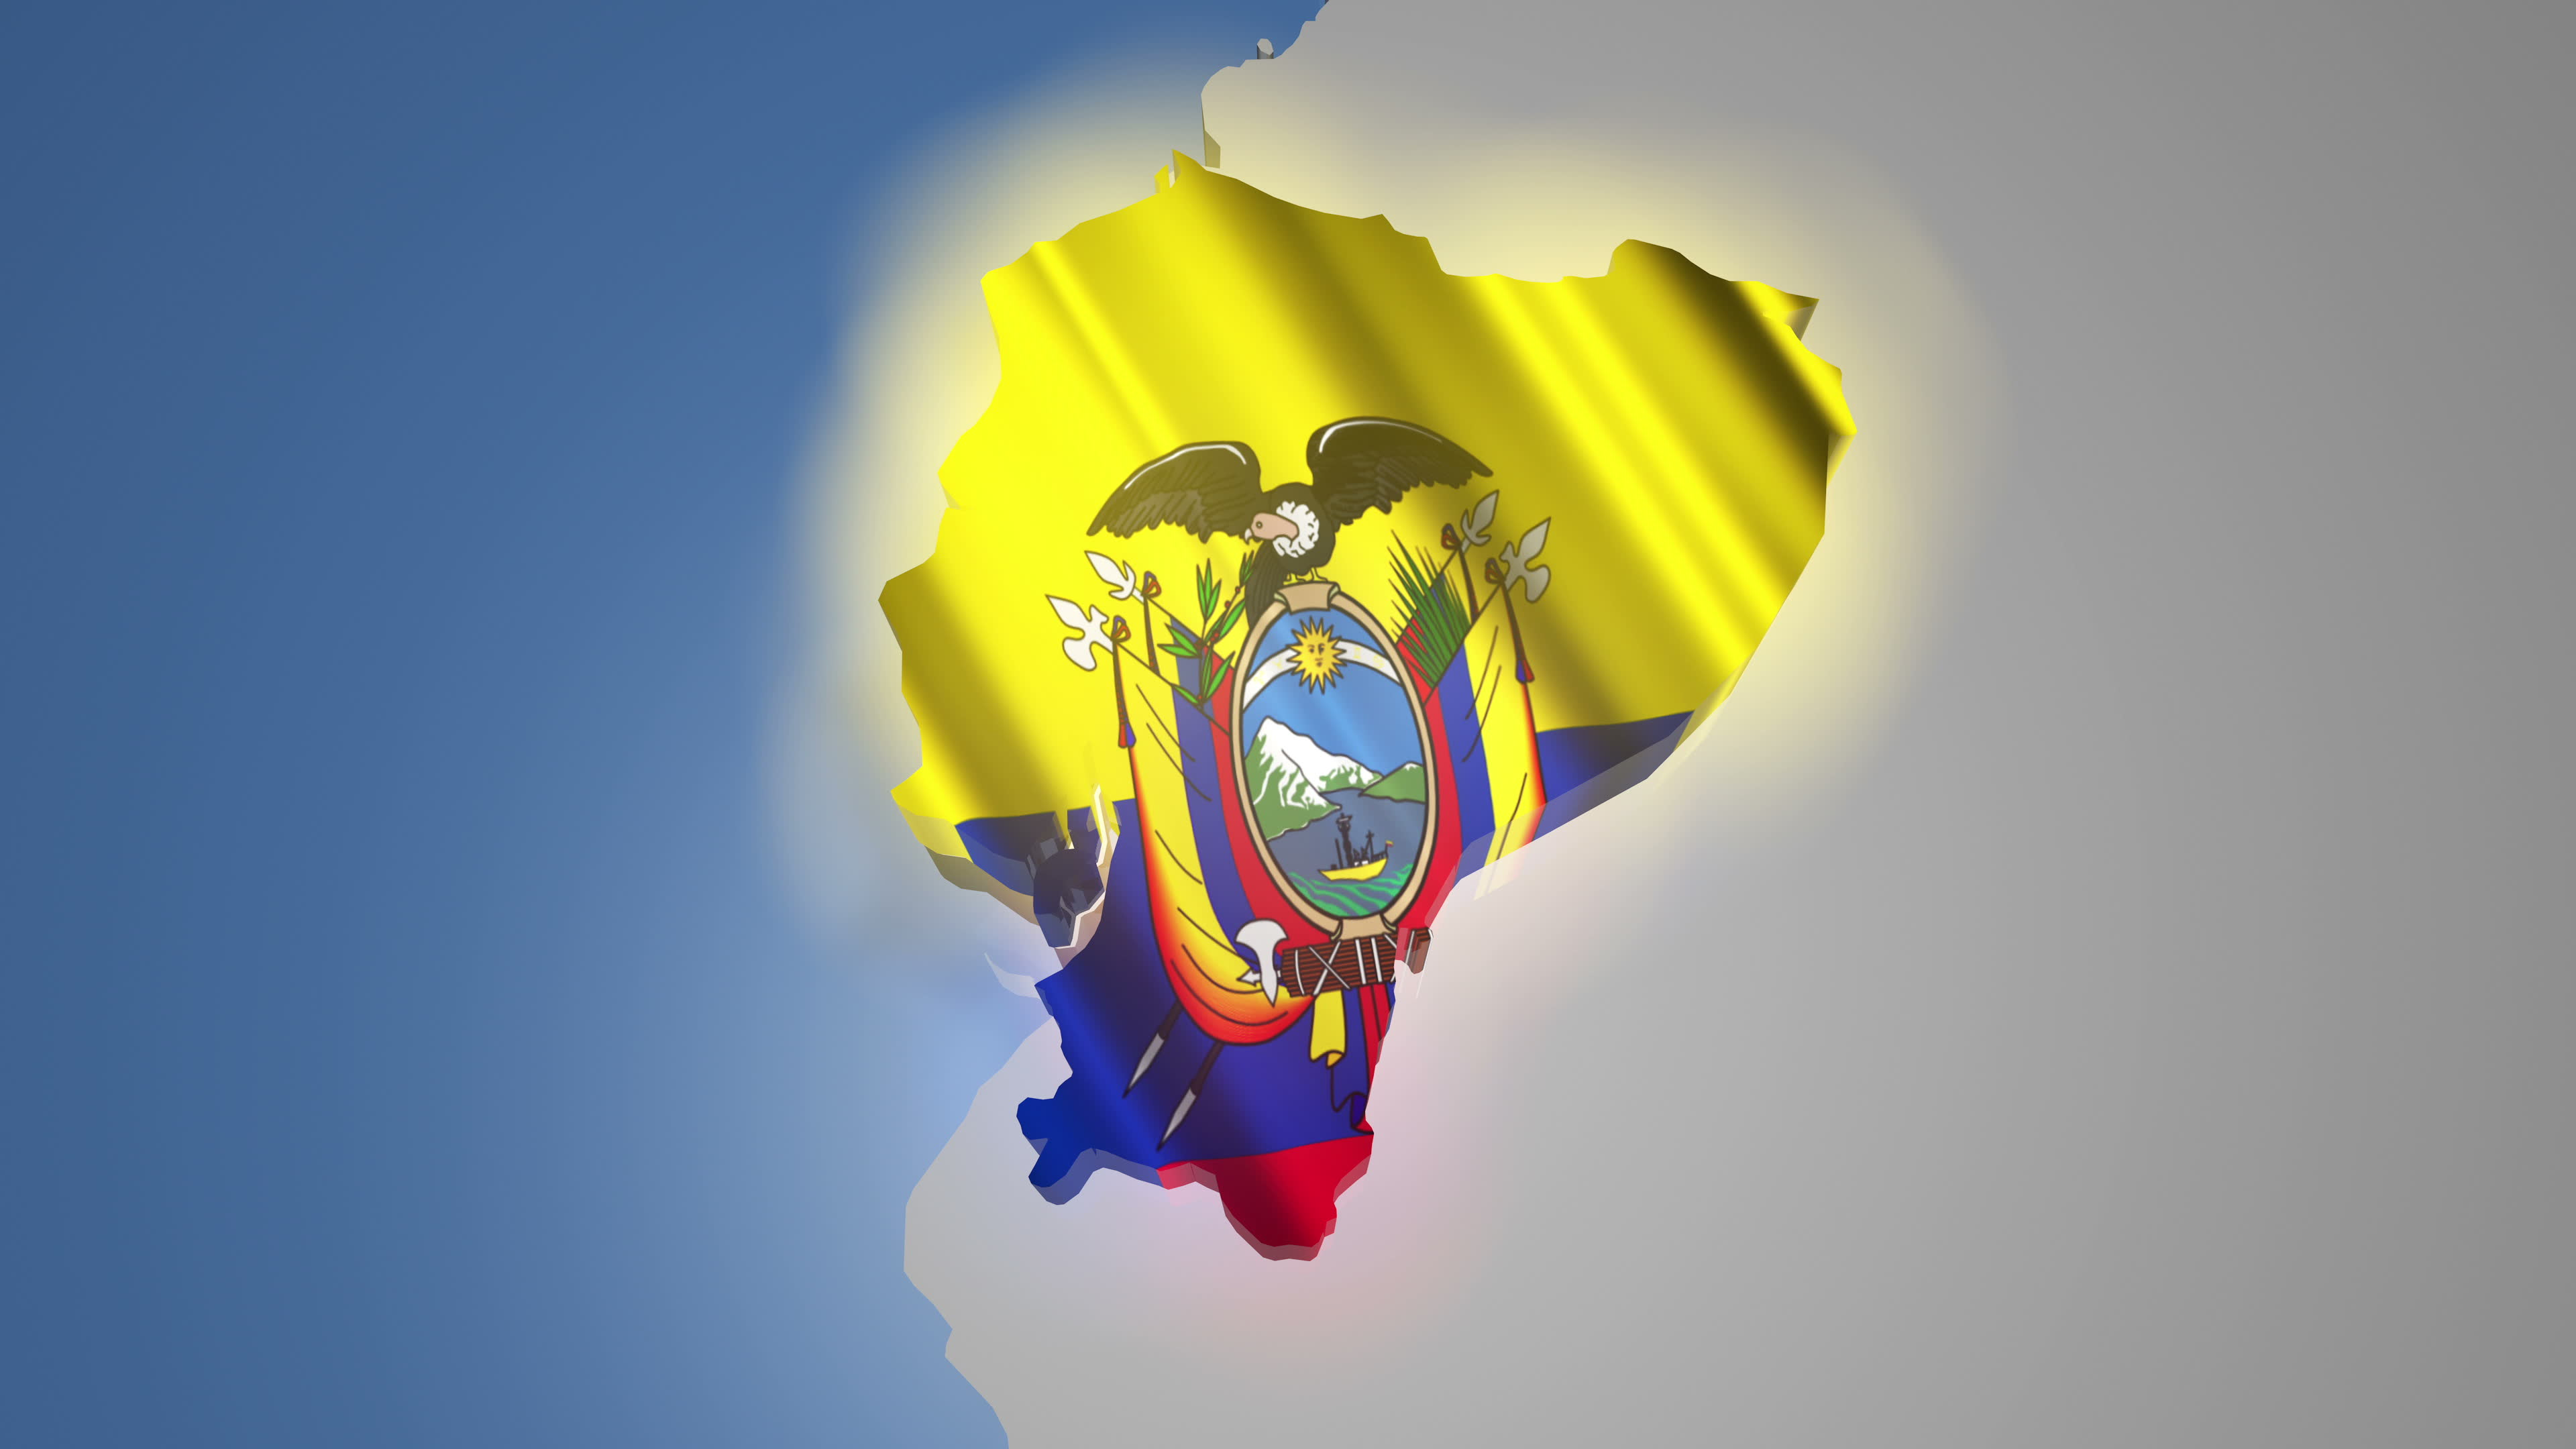 Ecuador 2014 World Cup